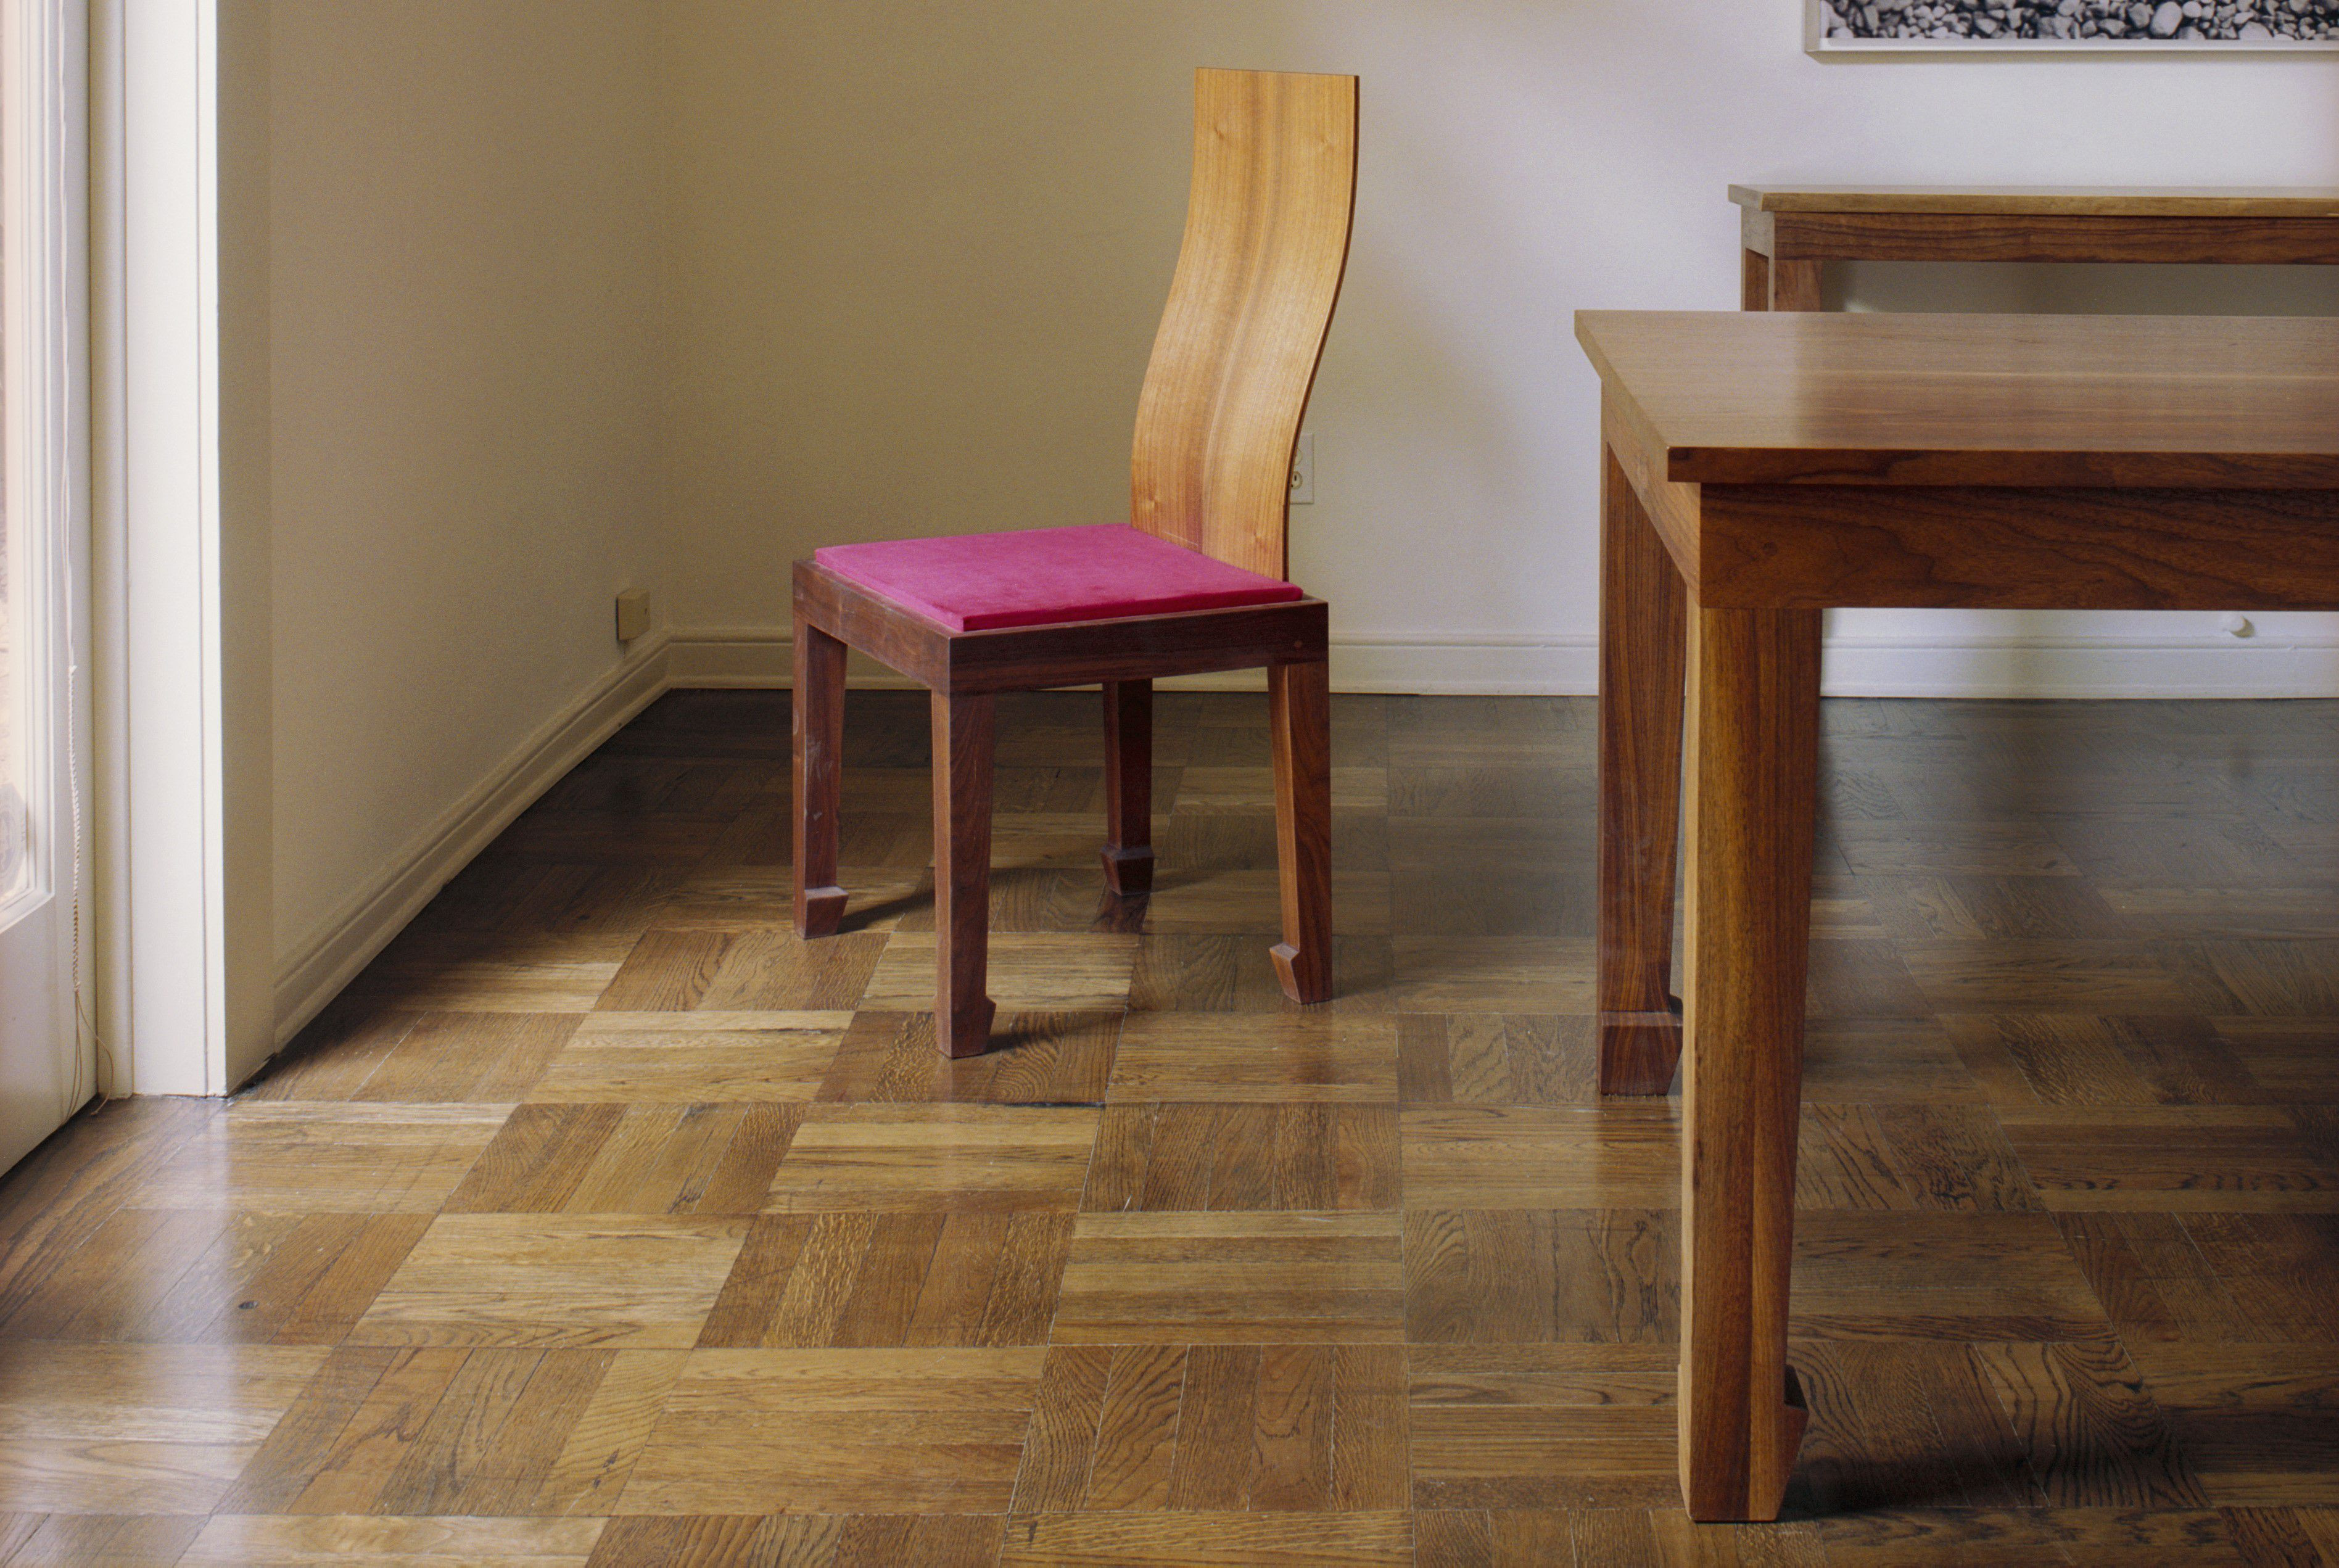 vintage hardwood flooring toronto of wood parquet flooring poised for a resurgence throughout wood parquet flooring 529502452 576c78195f9b585875a1ac13